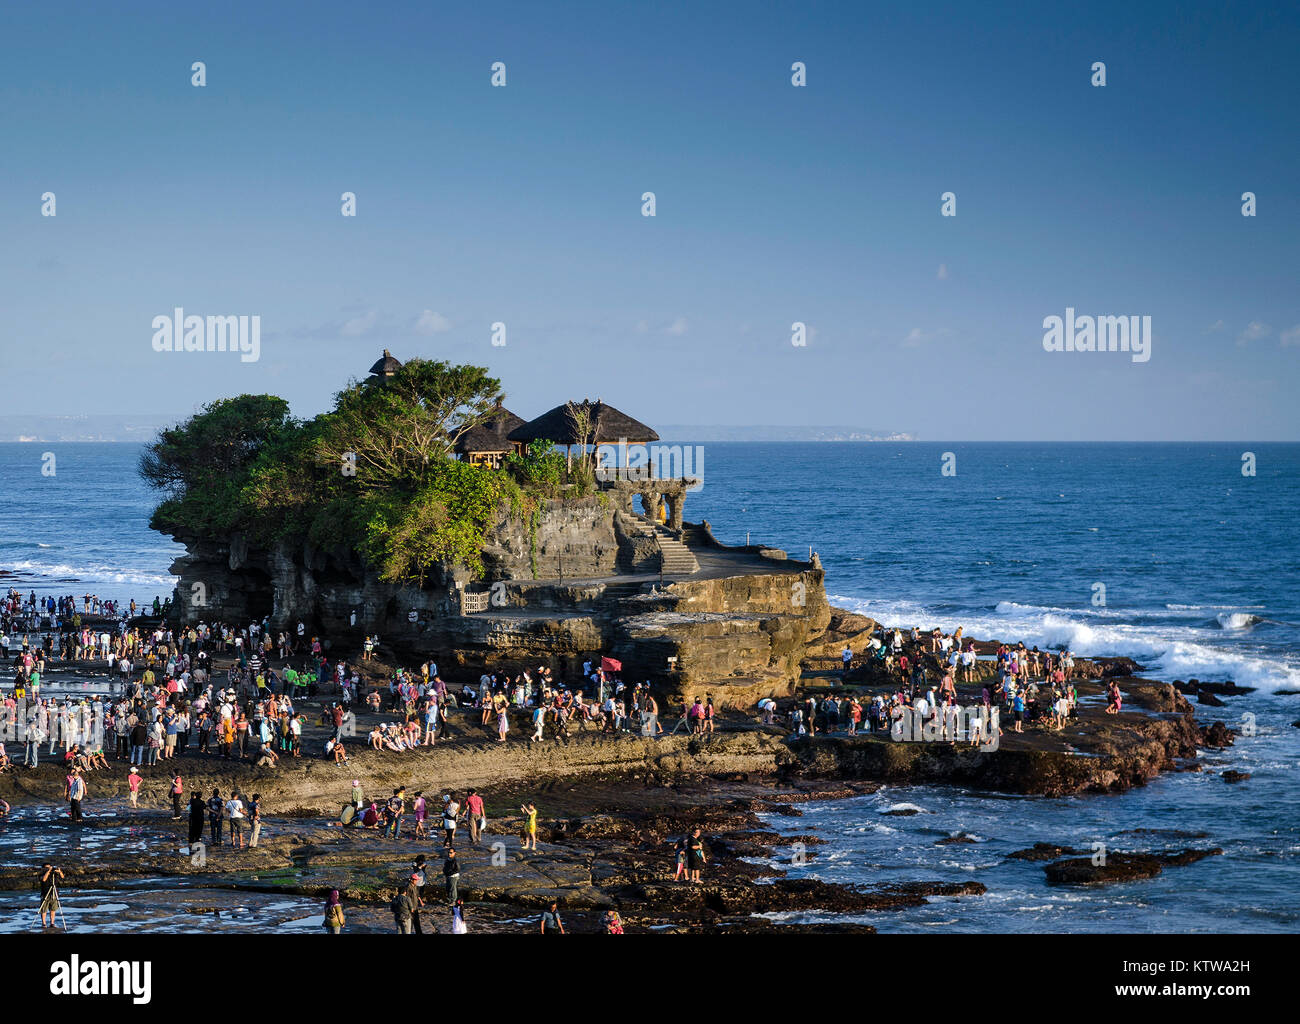 pura tanah lot famous balinese temple landmark on bali island coast indonesia at sunset - Stock Image